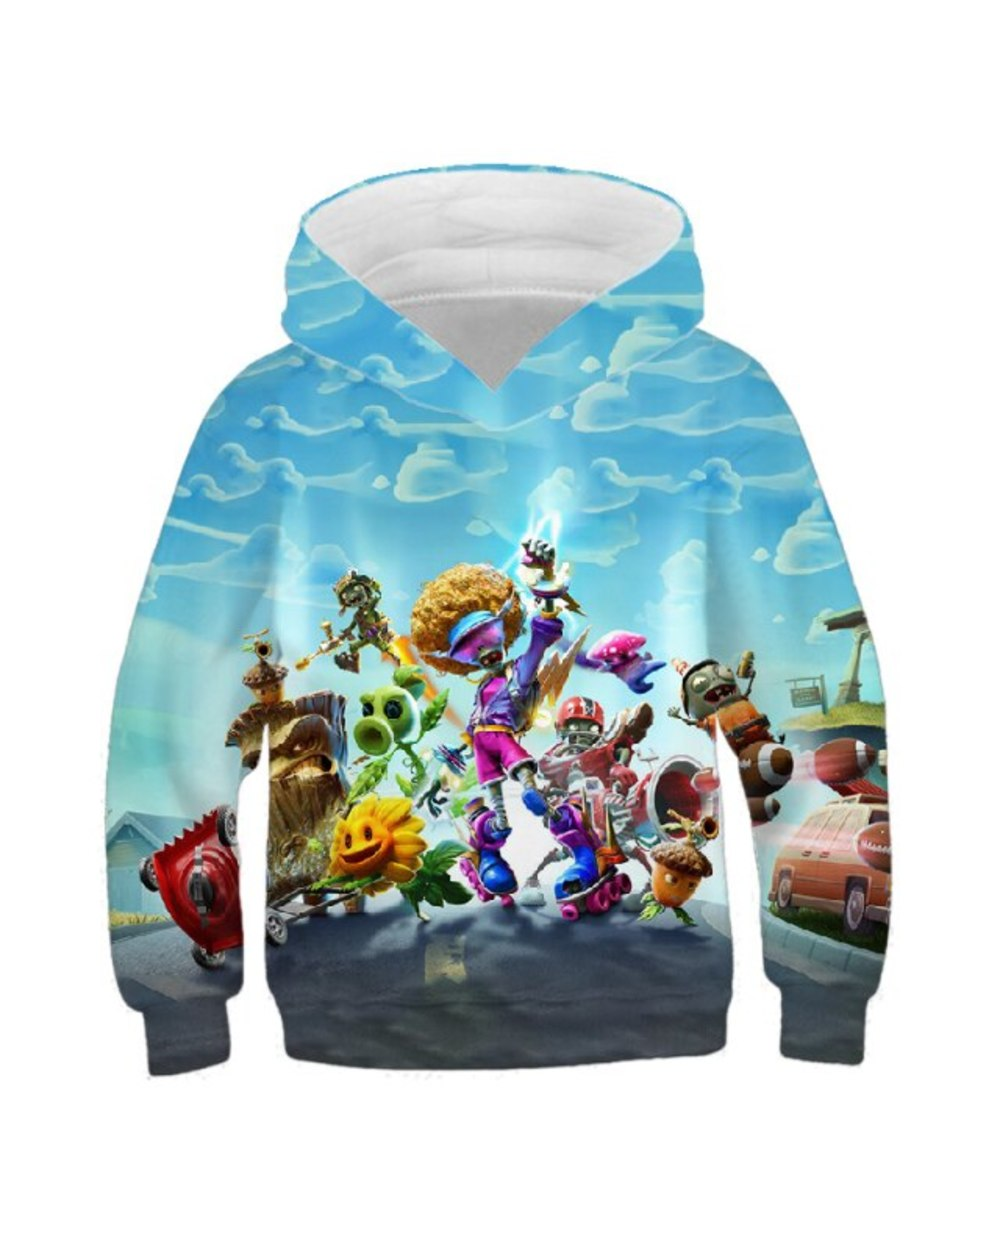 Plant And Zombie 3D Full Print Hoodie For Children 2021 New